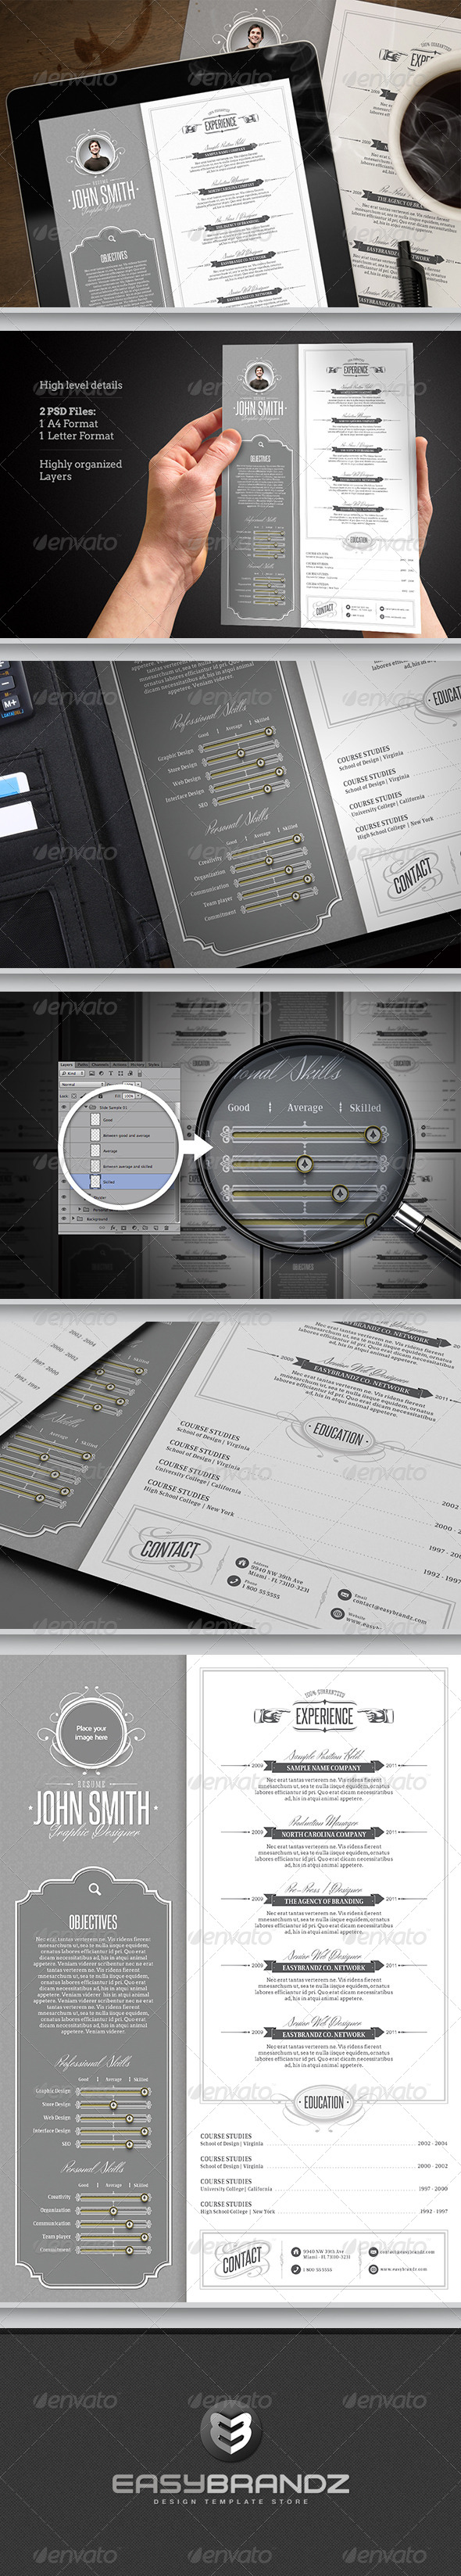 GraphicRiver Retro Resume Template 5581613